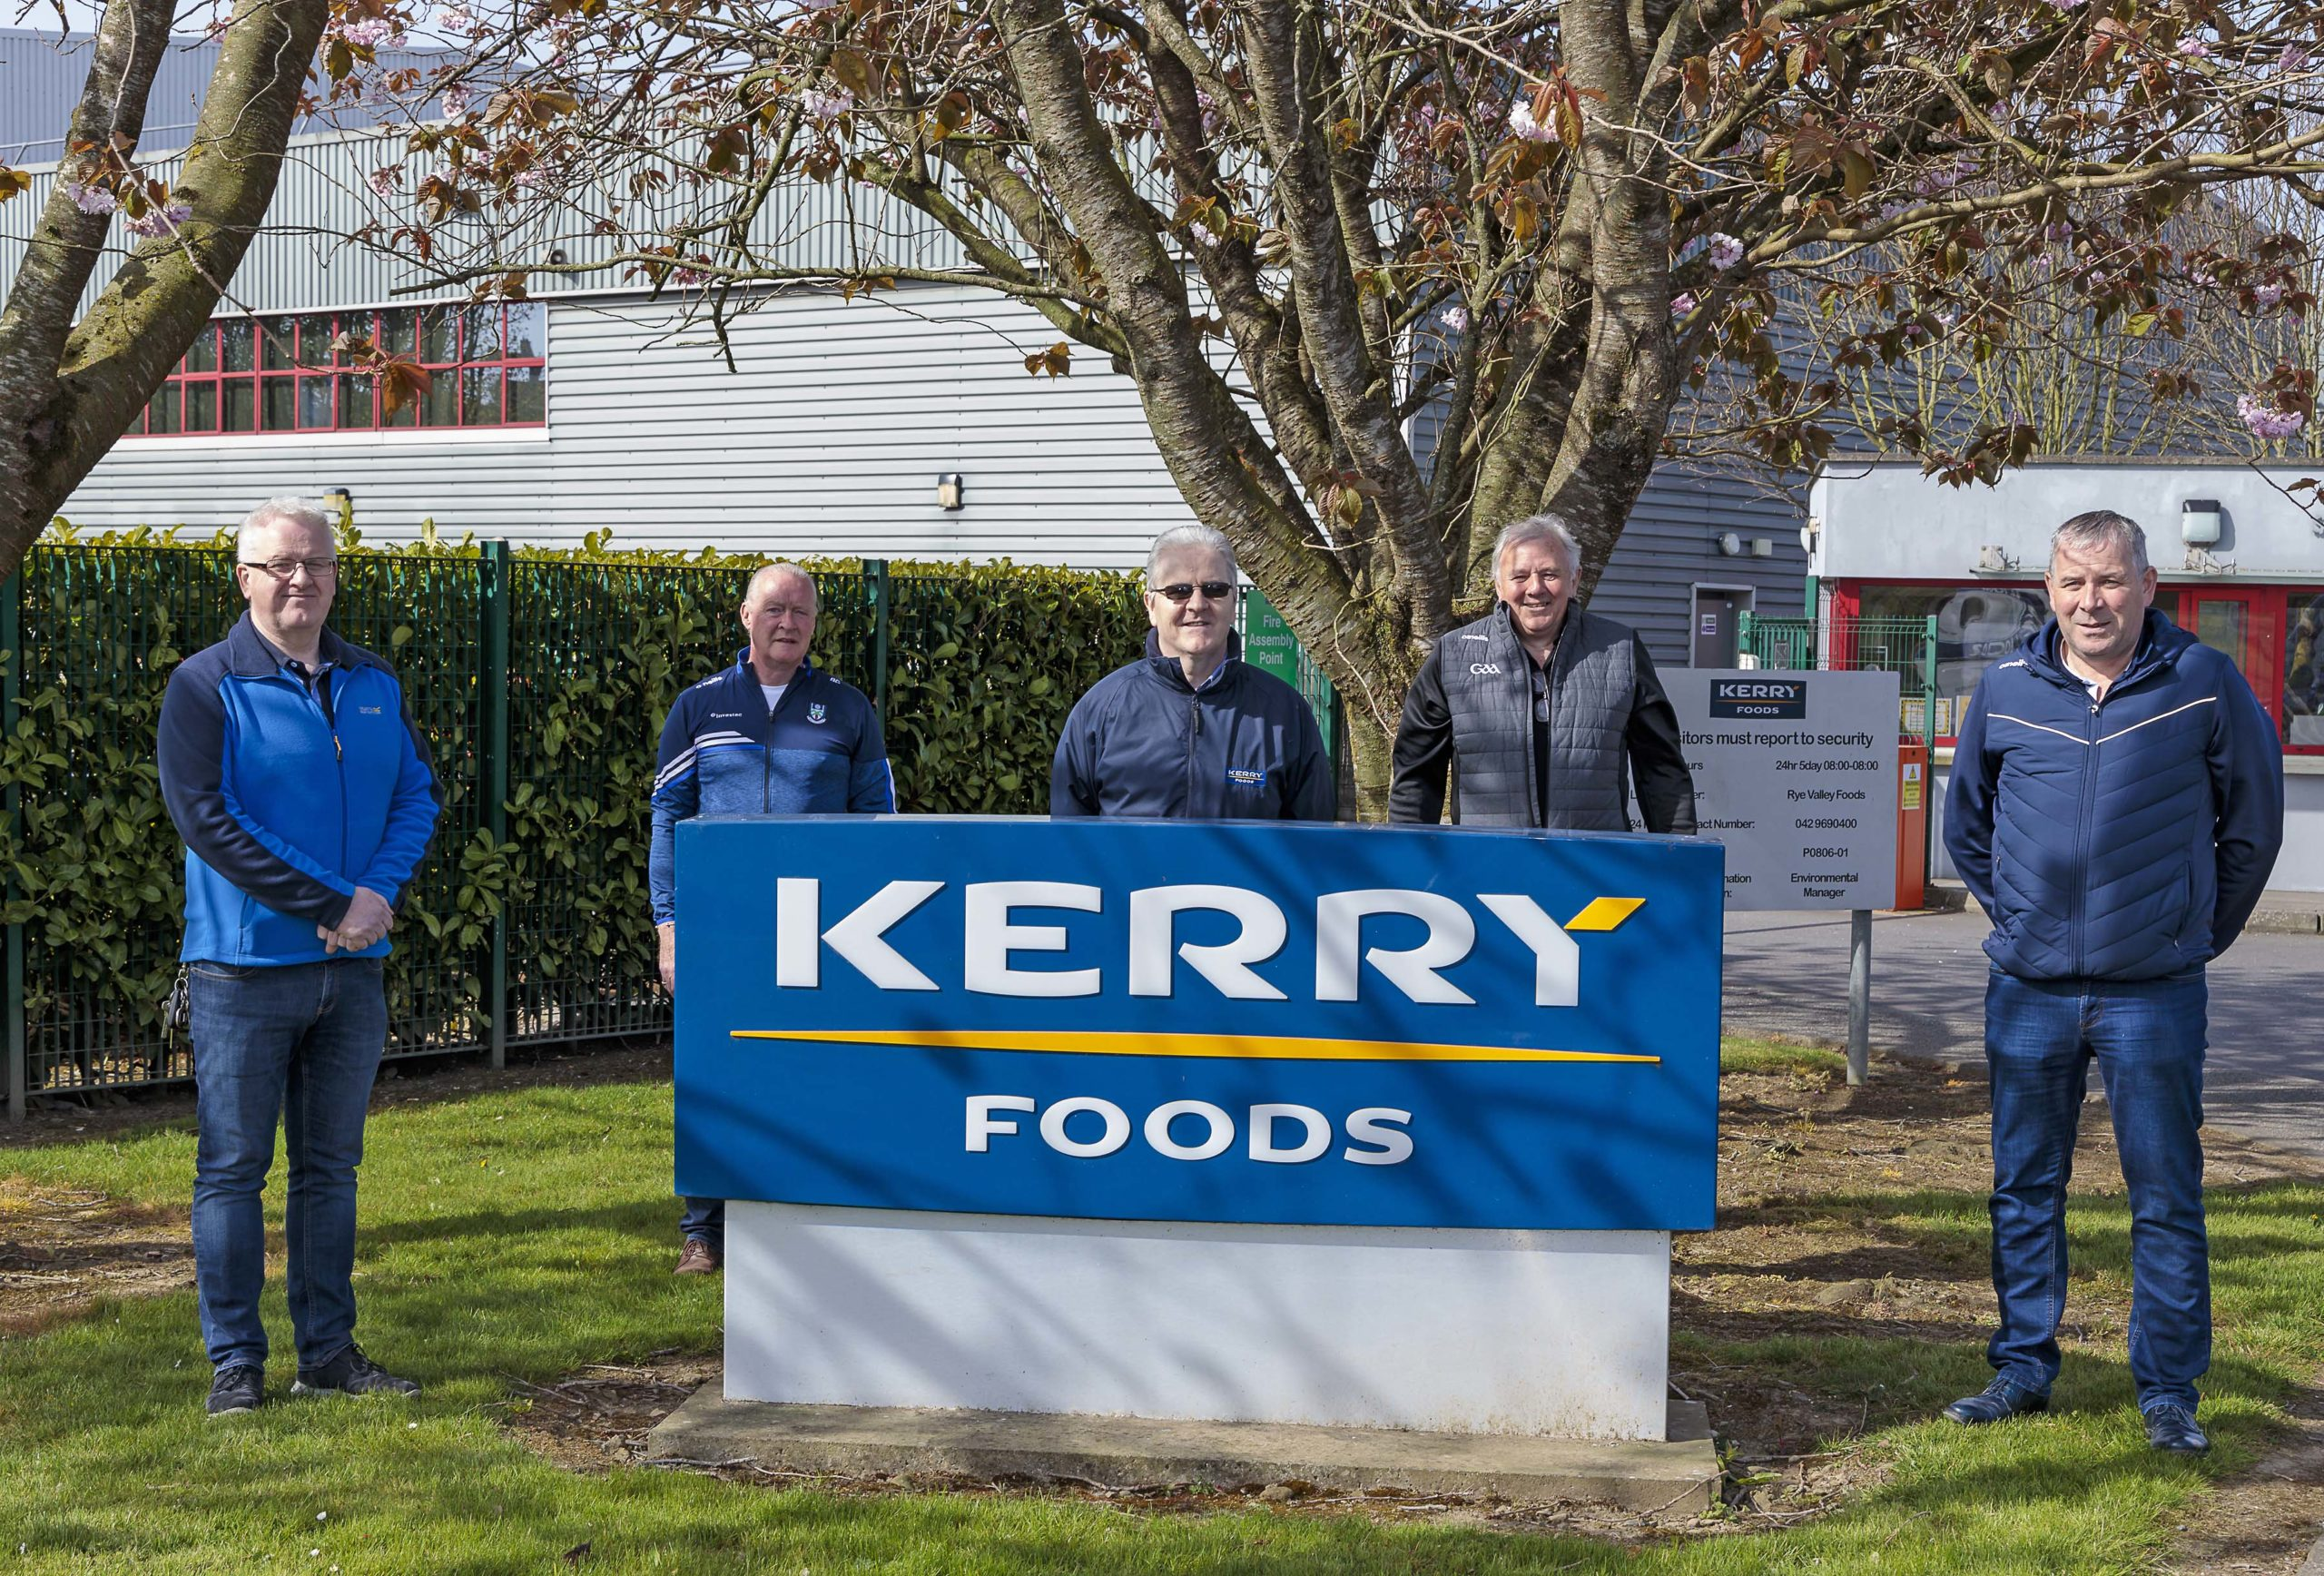 Kerry Foods & Monaghan GAA food share Delivery Day